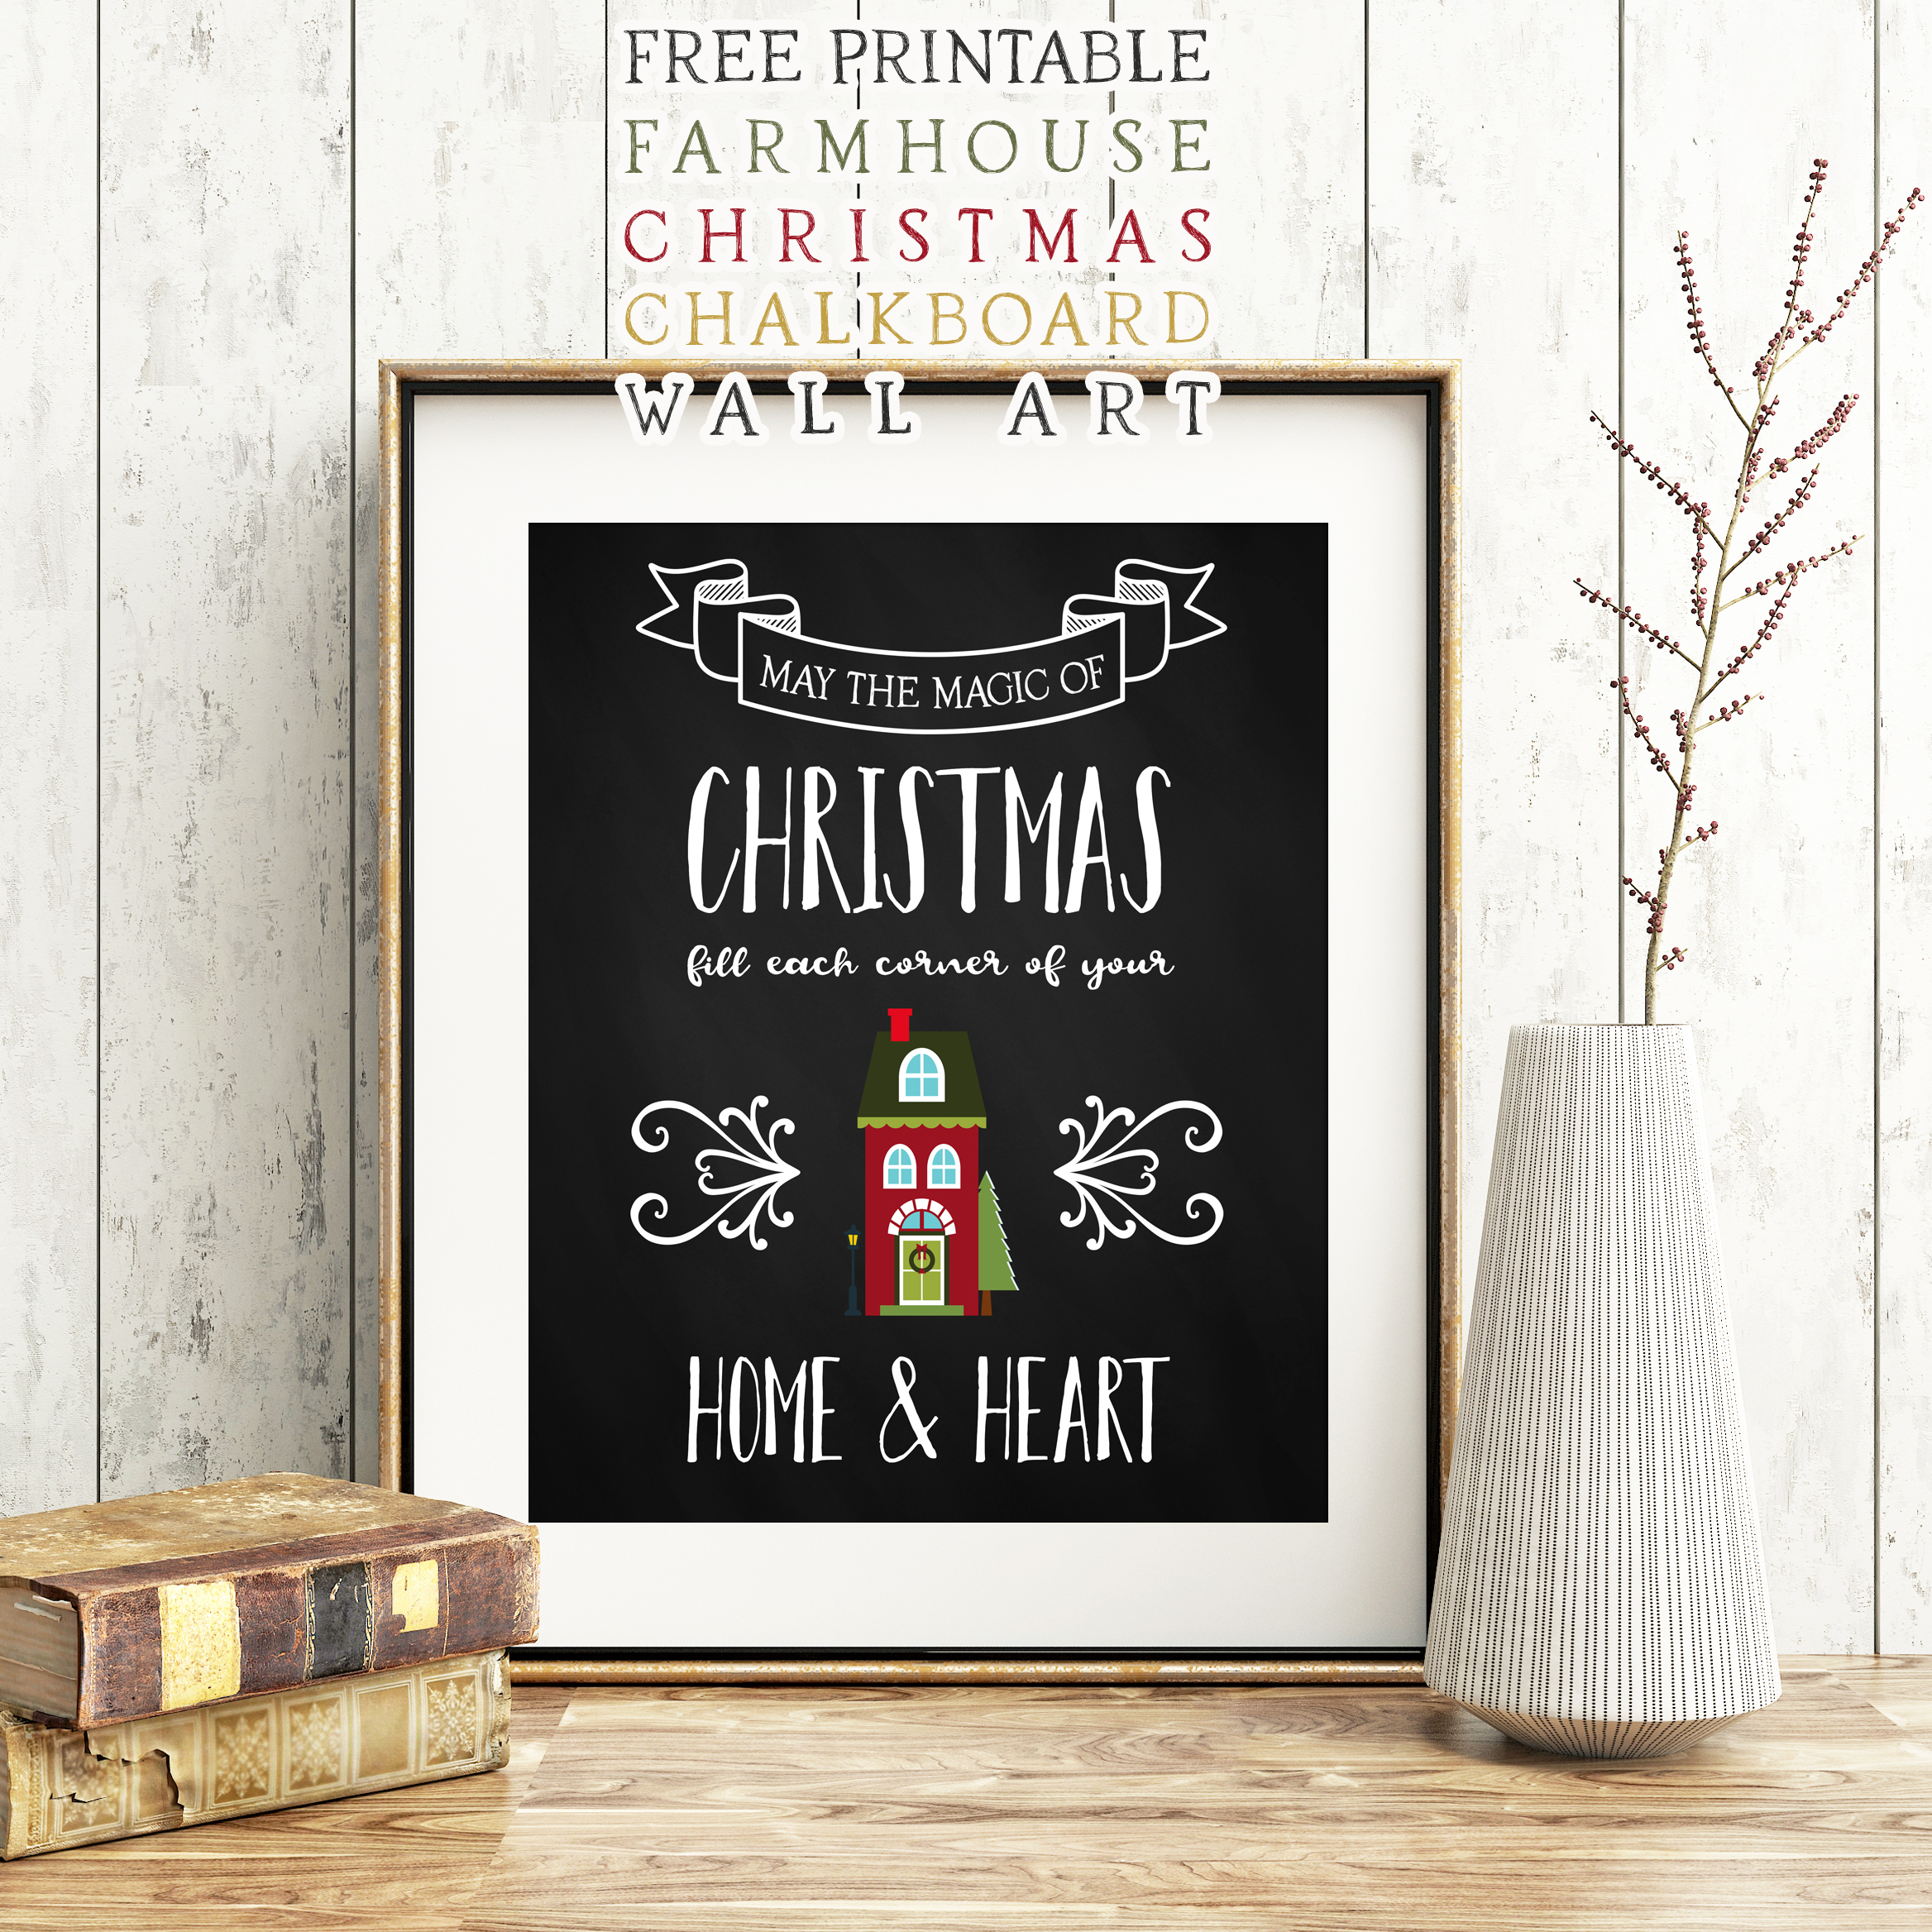 Free Printable Wall Art Farmhouse